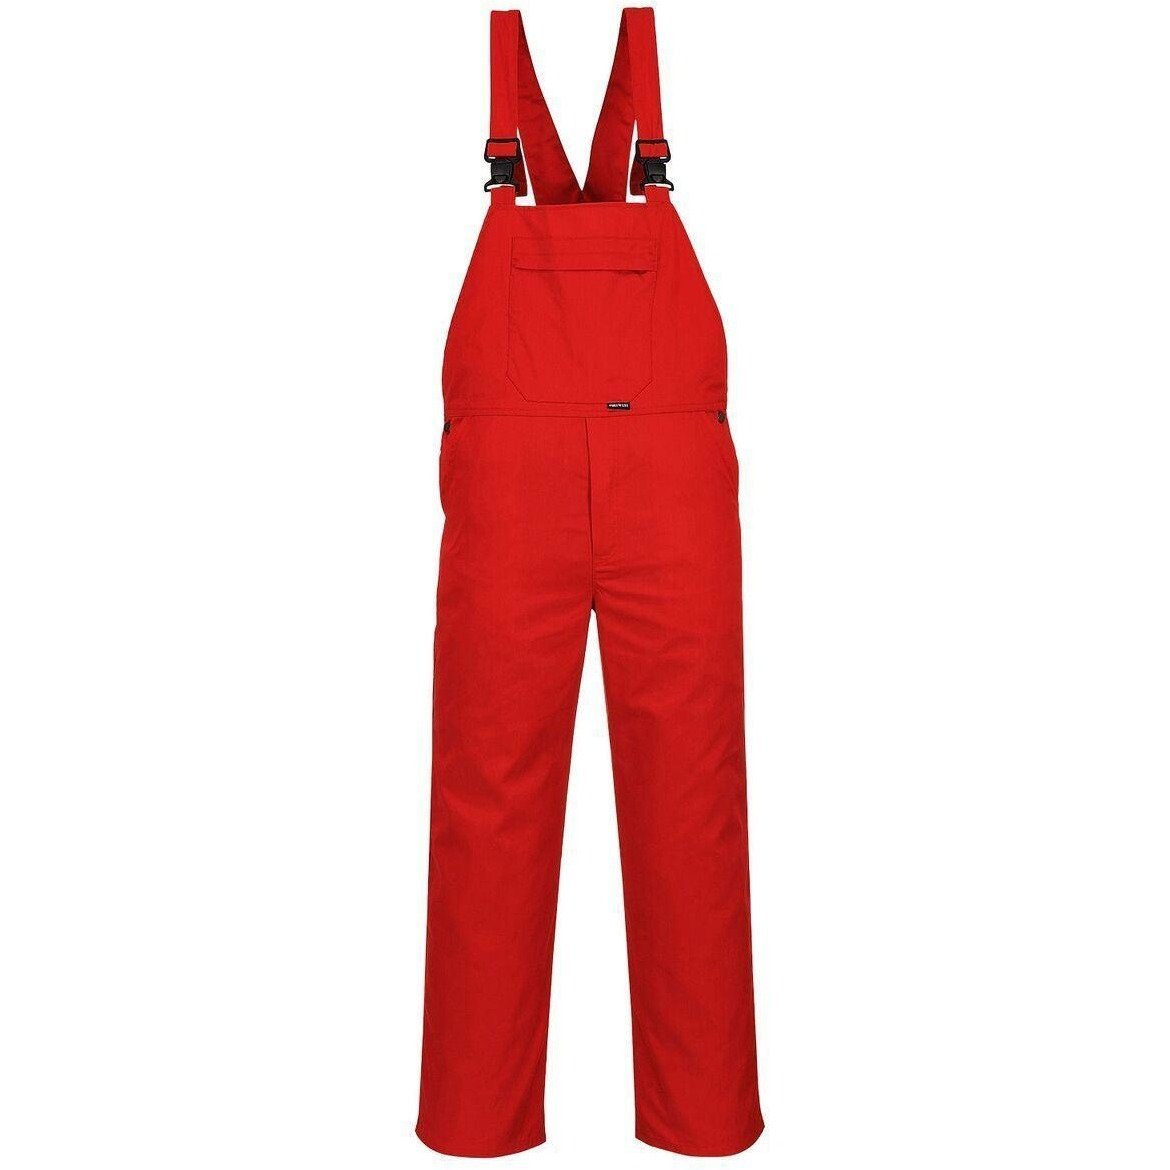 Portwest Burnley Bib and Brace C875 - reid outdoors